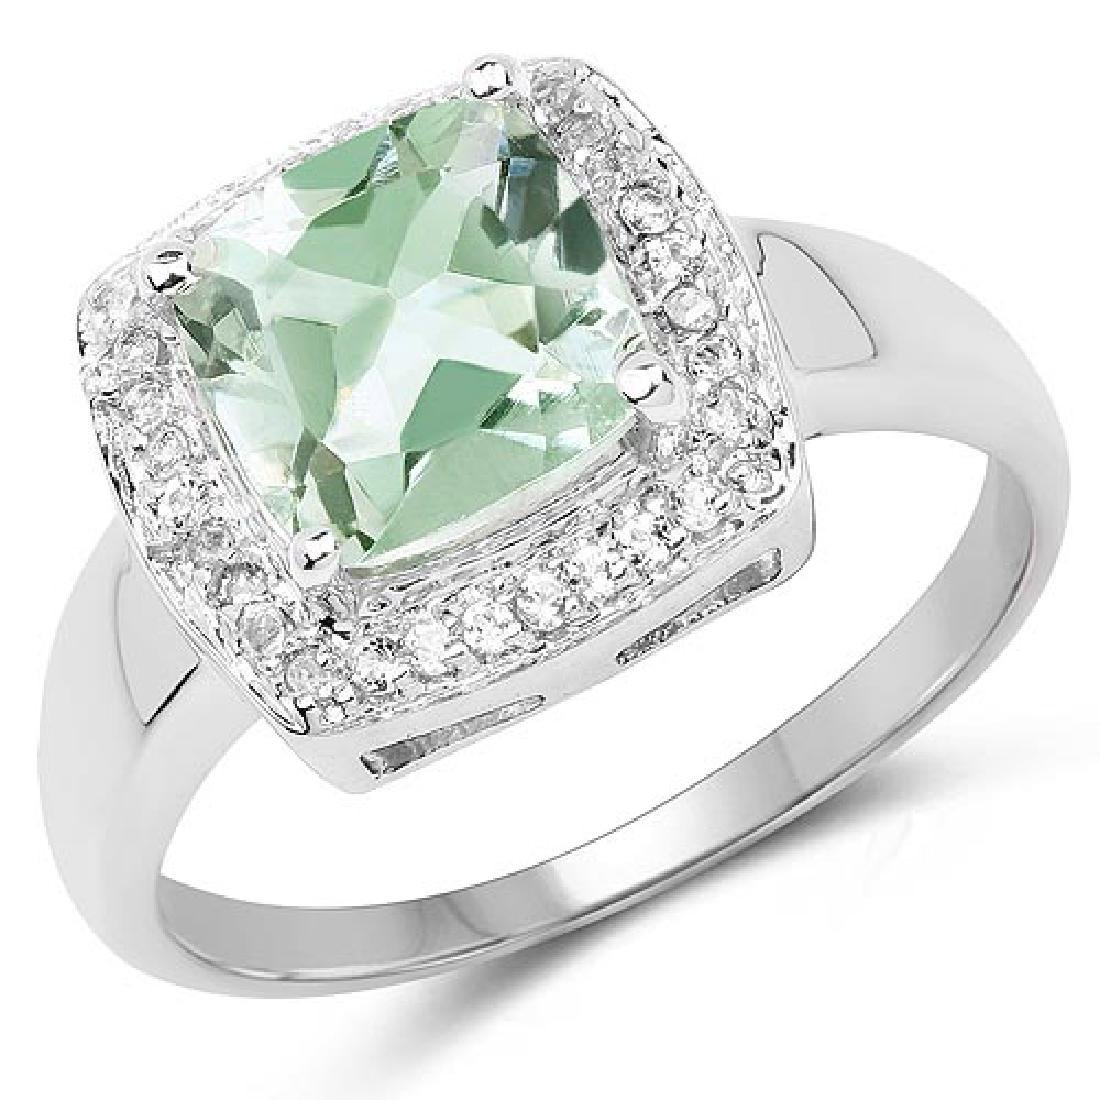 2.31 Carat Genuine Green Amethyst and White Topaz .925